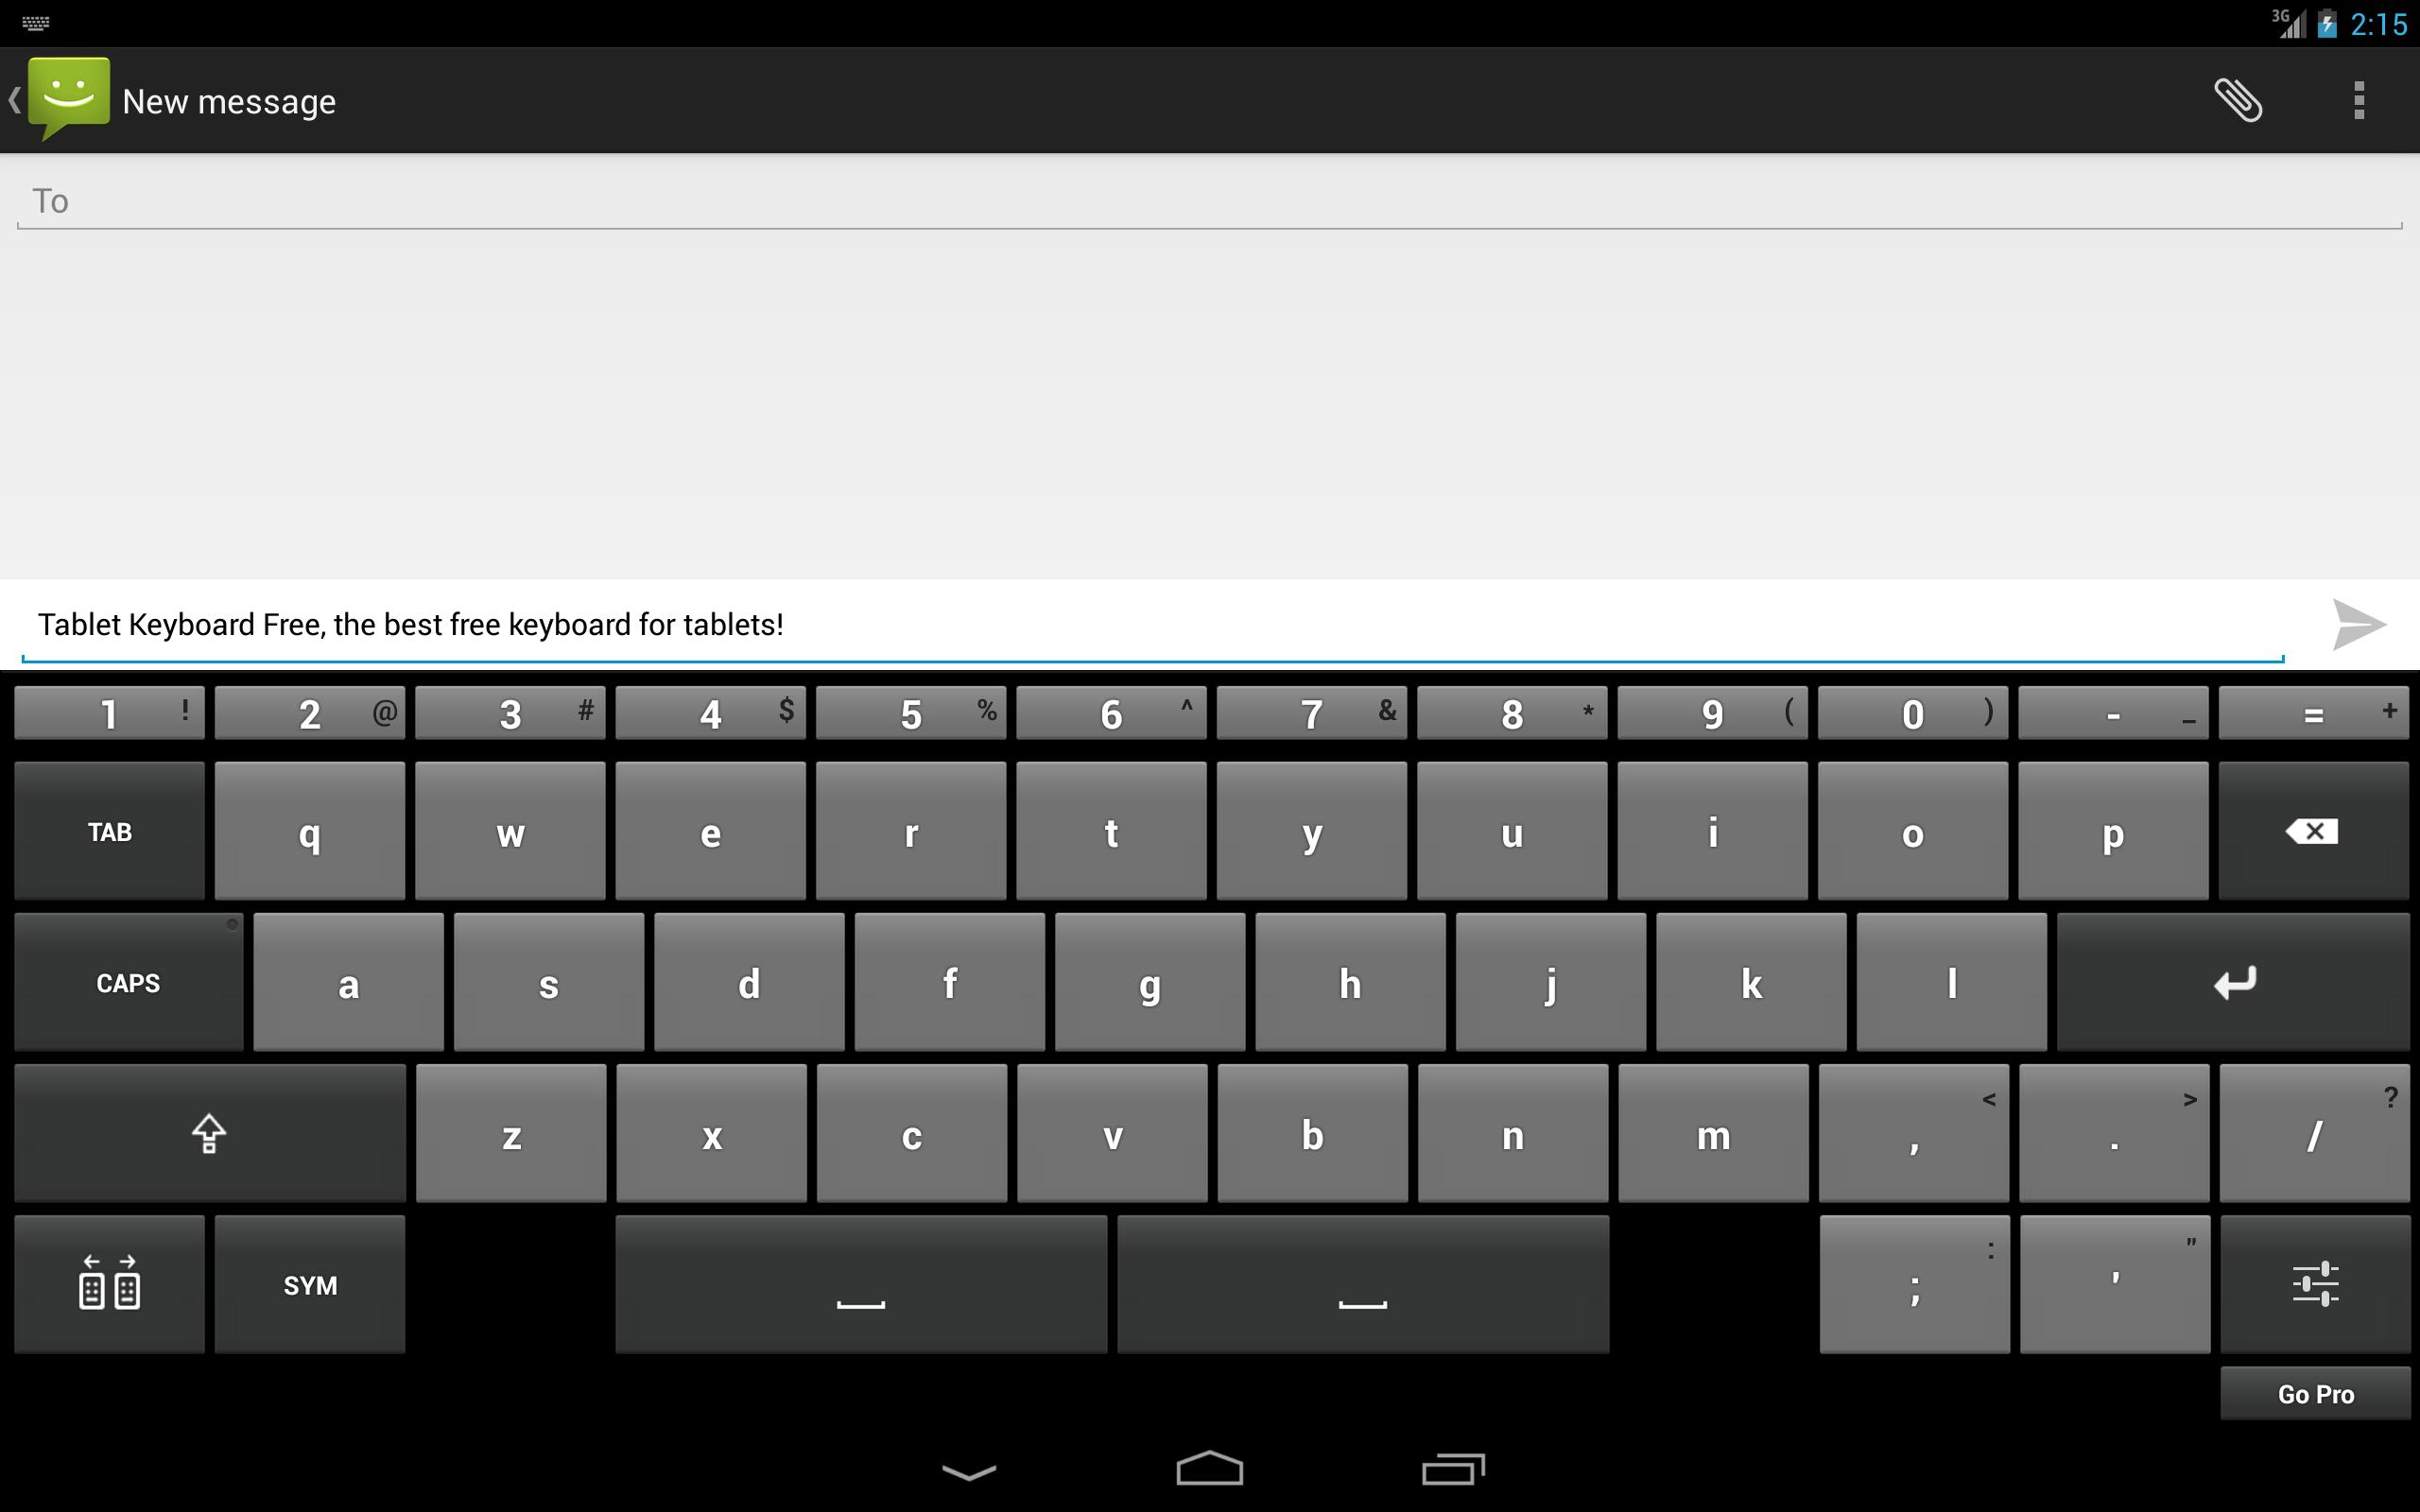 Tablet Keyboard Free for Android - APK Download